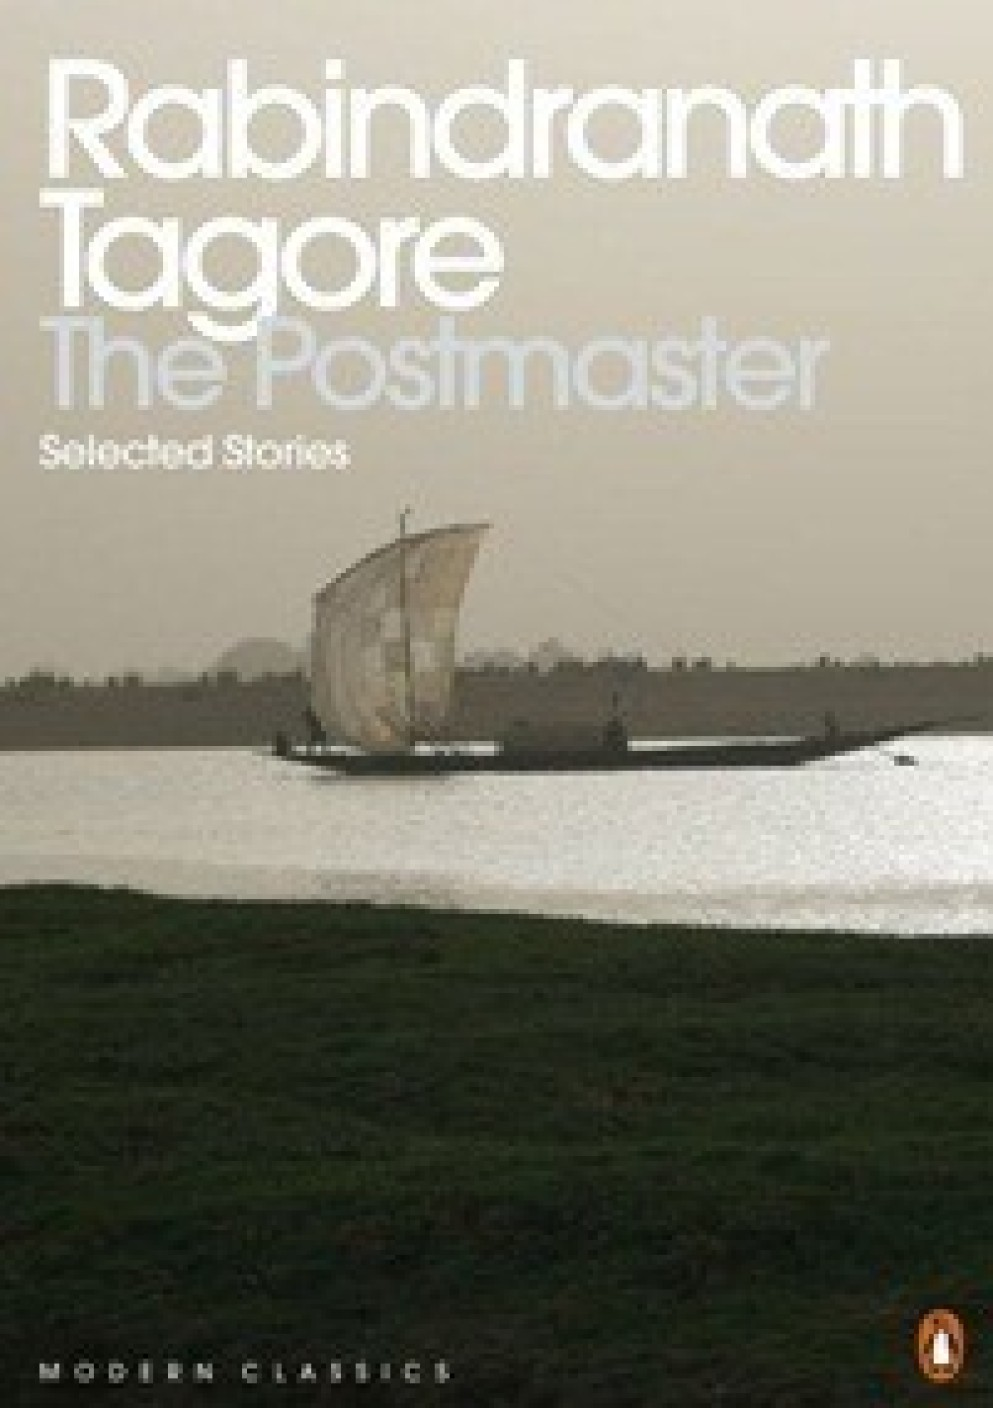 short essay on rabindranath tagore essay on book fair essay on  tagore selected short stories selected short stories buy add to cart rabindranath